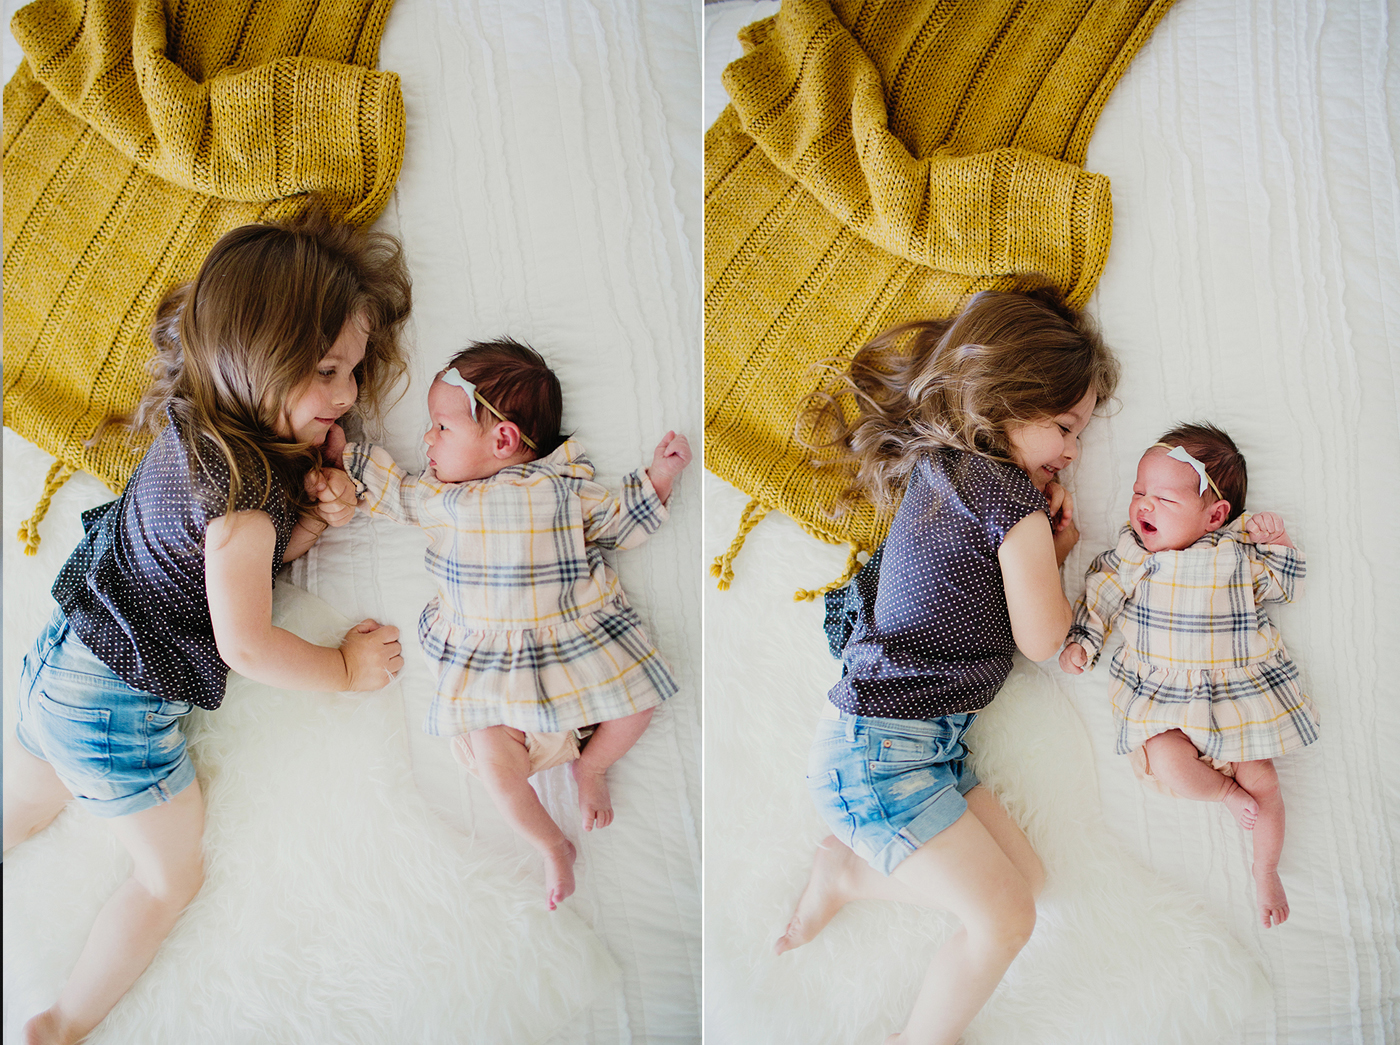 Liz Anne Photography | Family Portraits | Lifestyle | Kids | Albuquerque | New Mexico 10.jpg